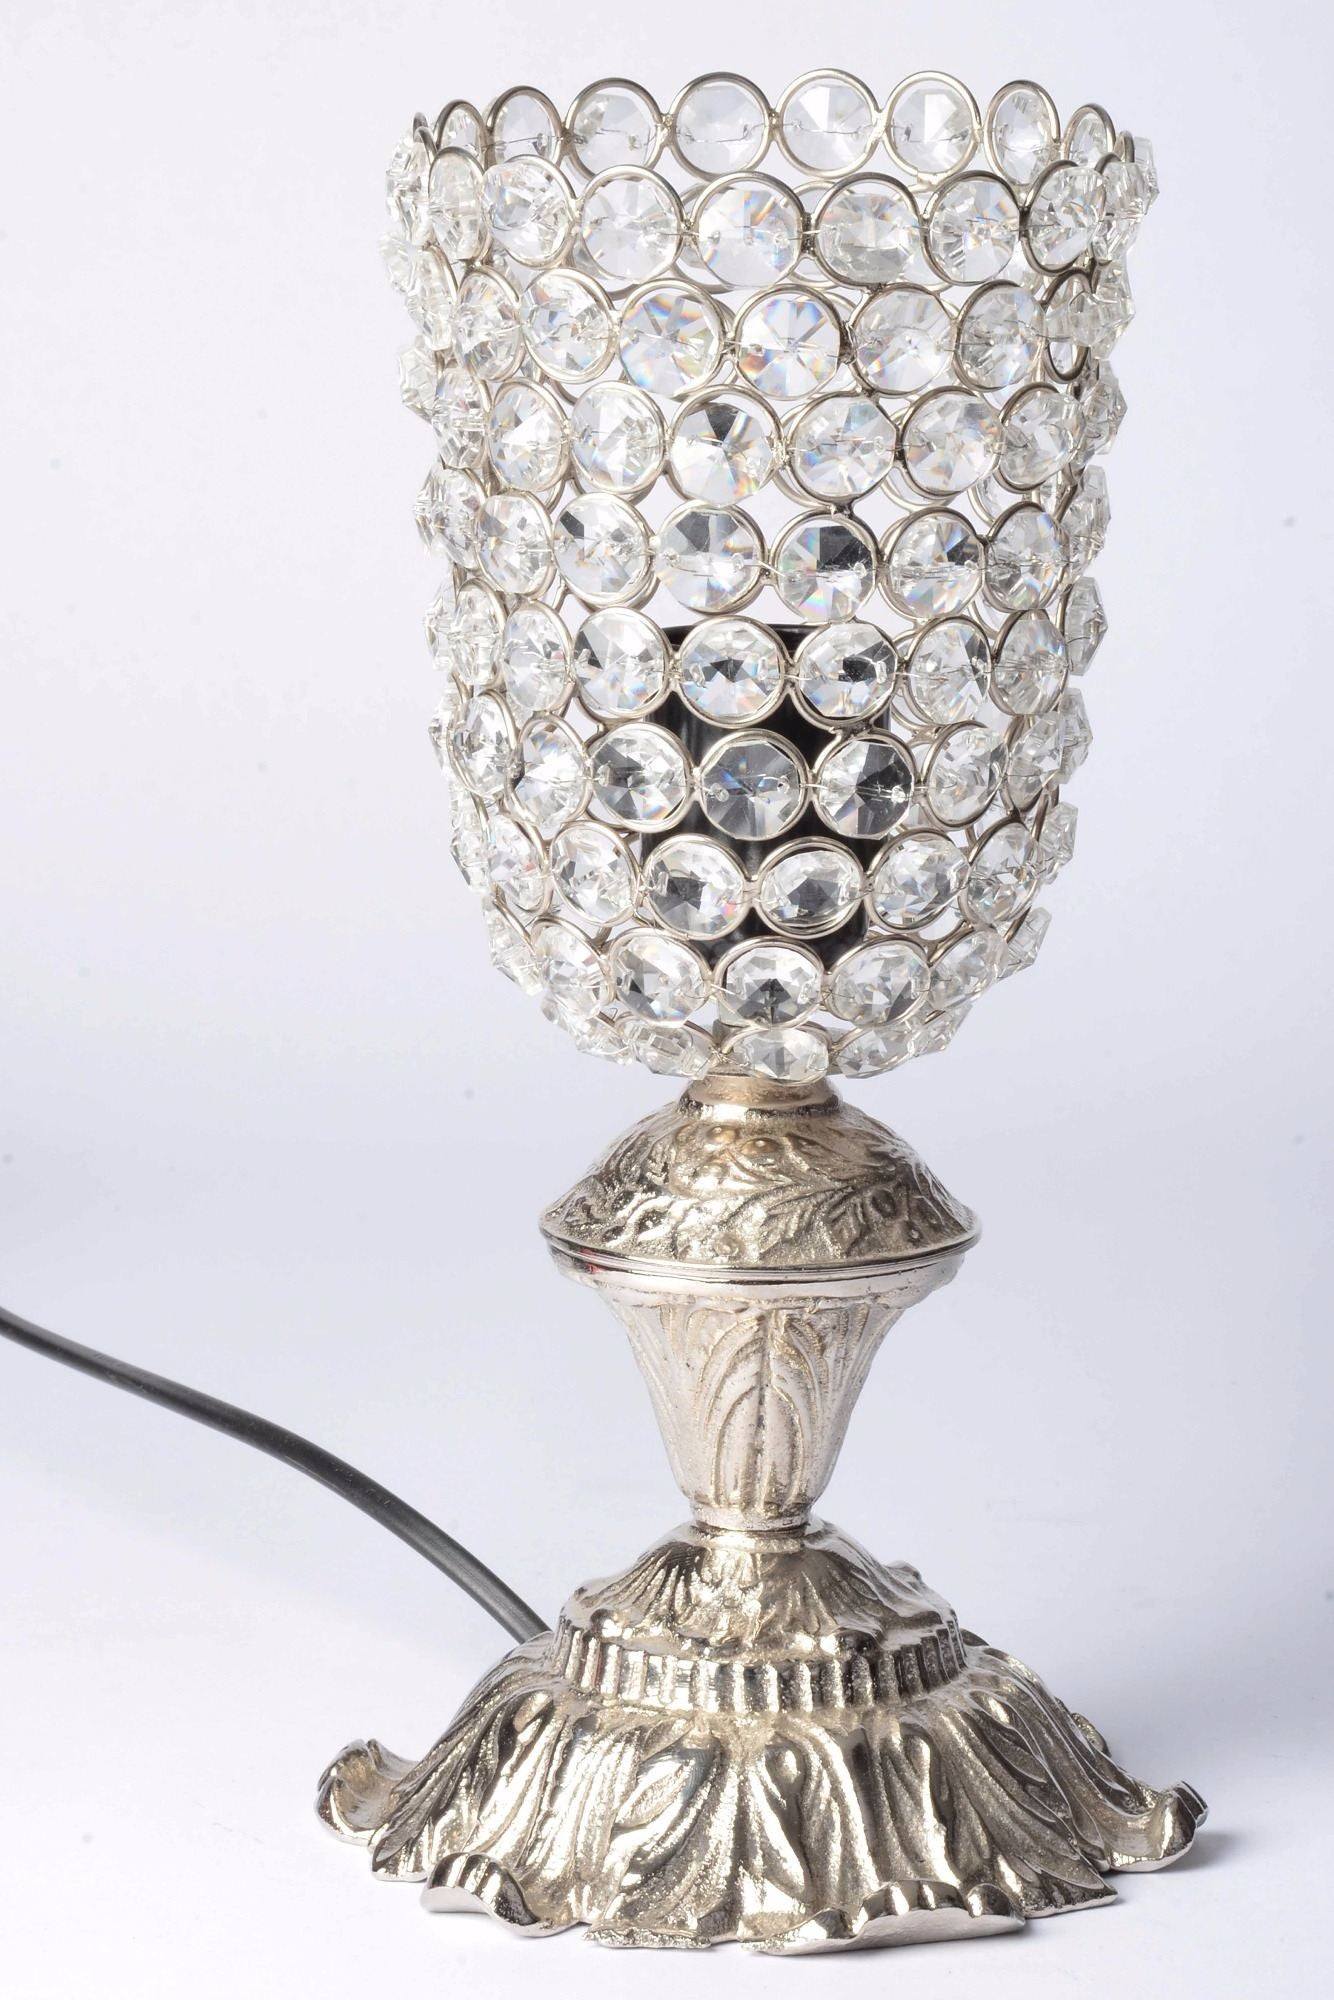 Arelin - Glass Crystal Beads Table Lamp - Wine Glass Simply Roka